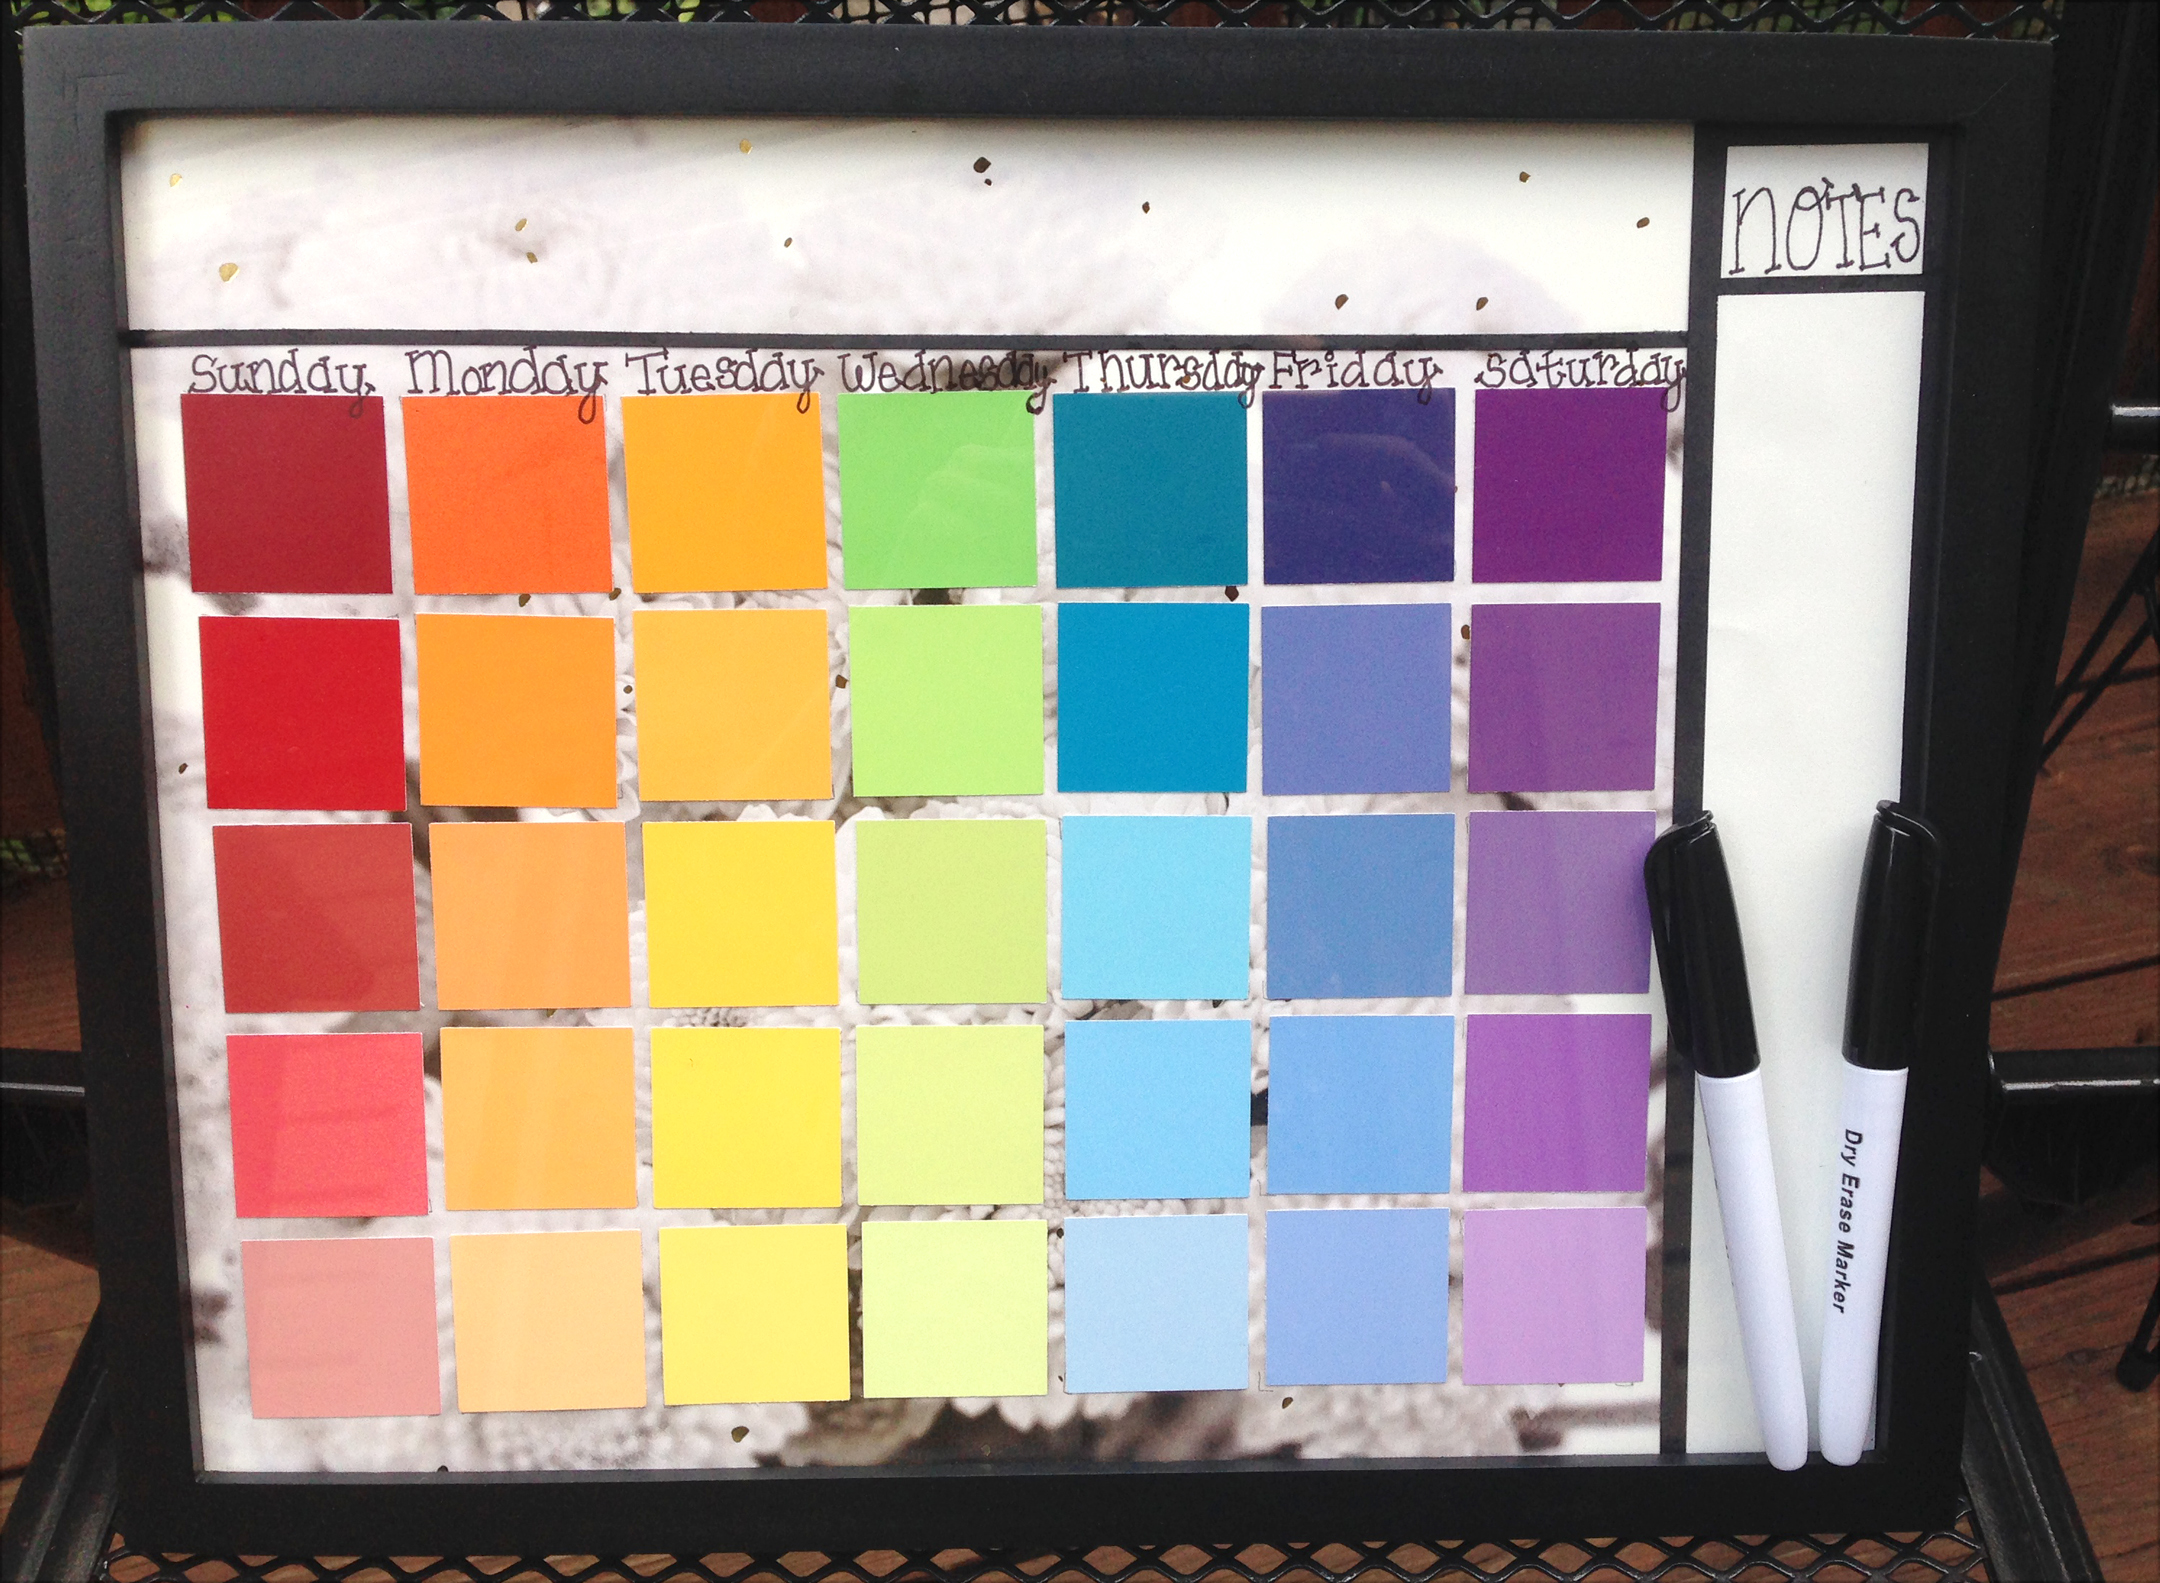 Diy Calendar With Paint Samples : Diy dry erase calendar with paint samples